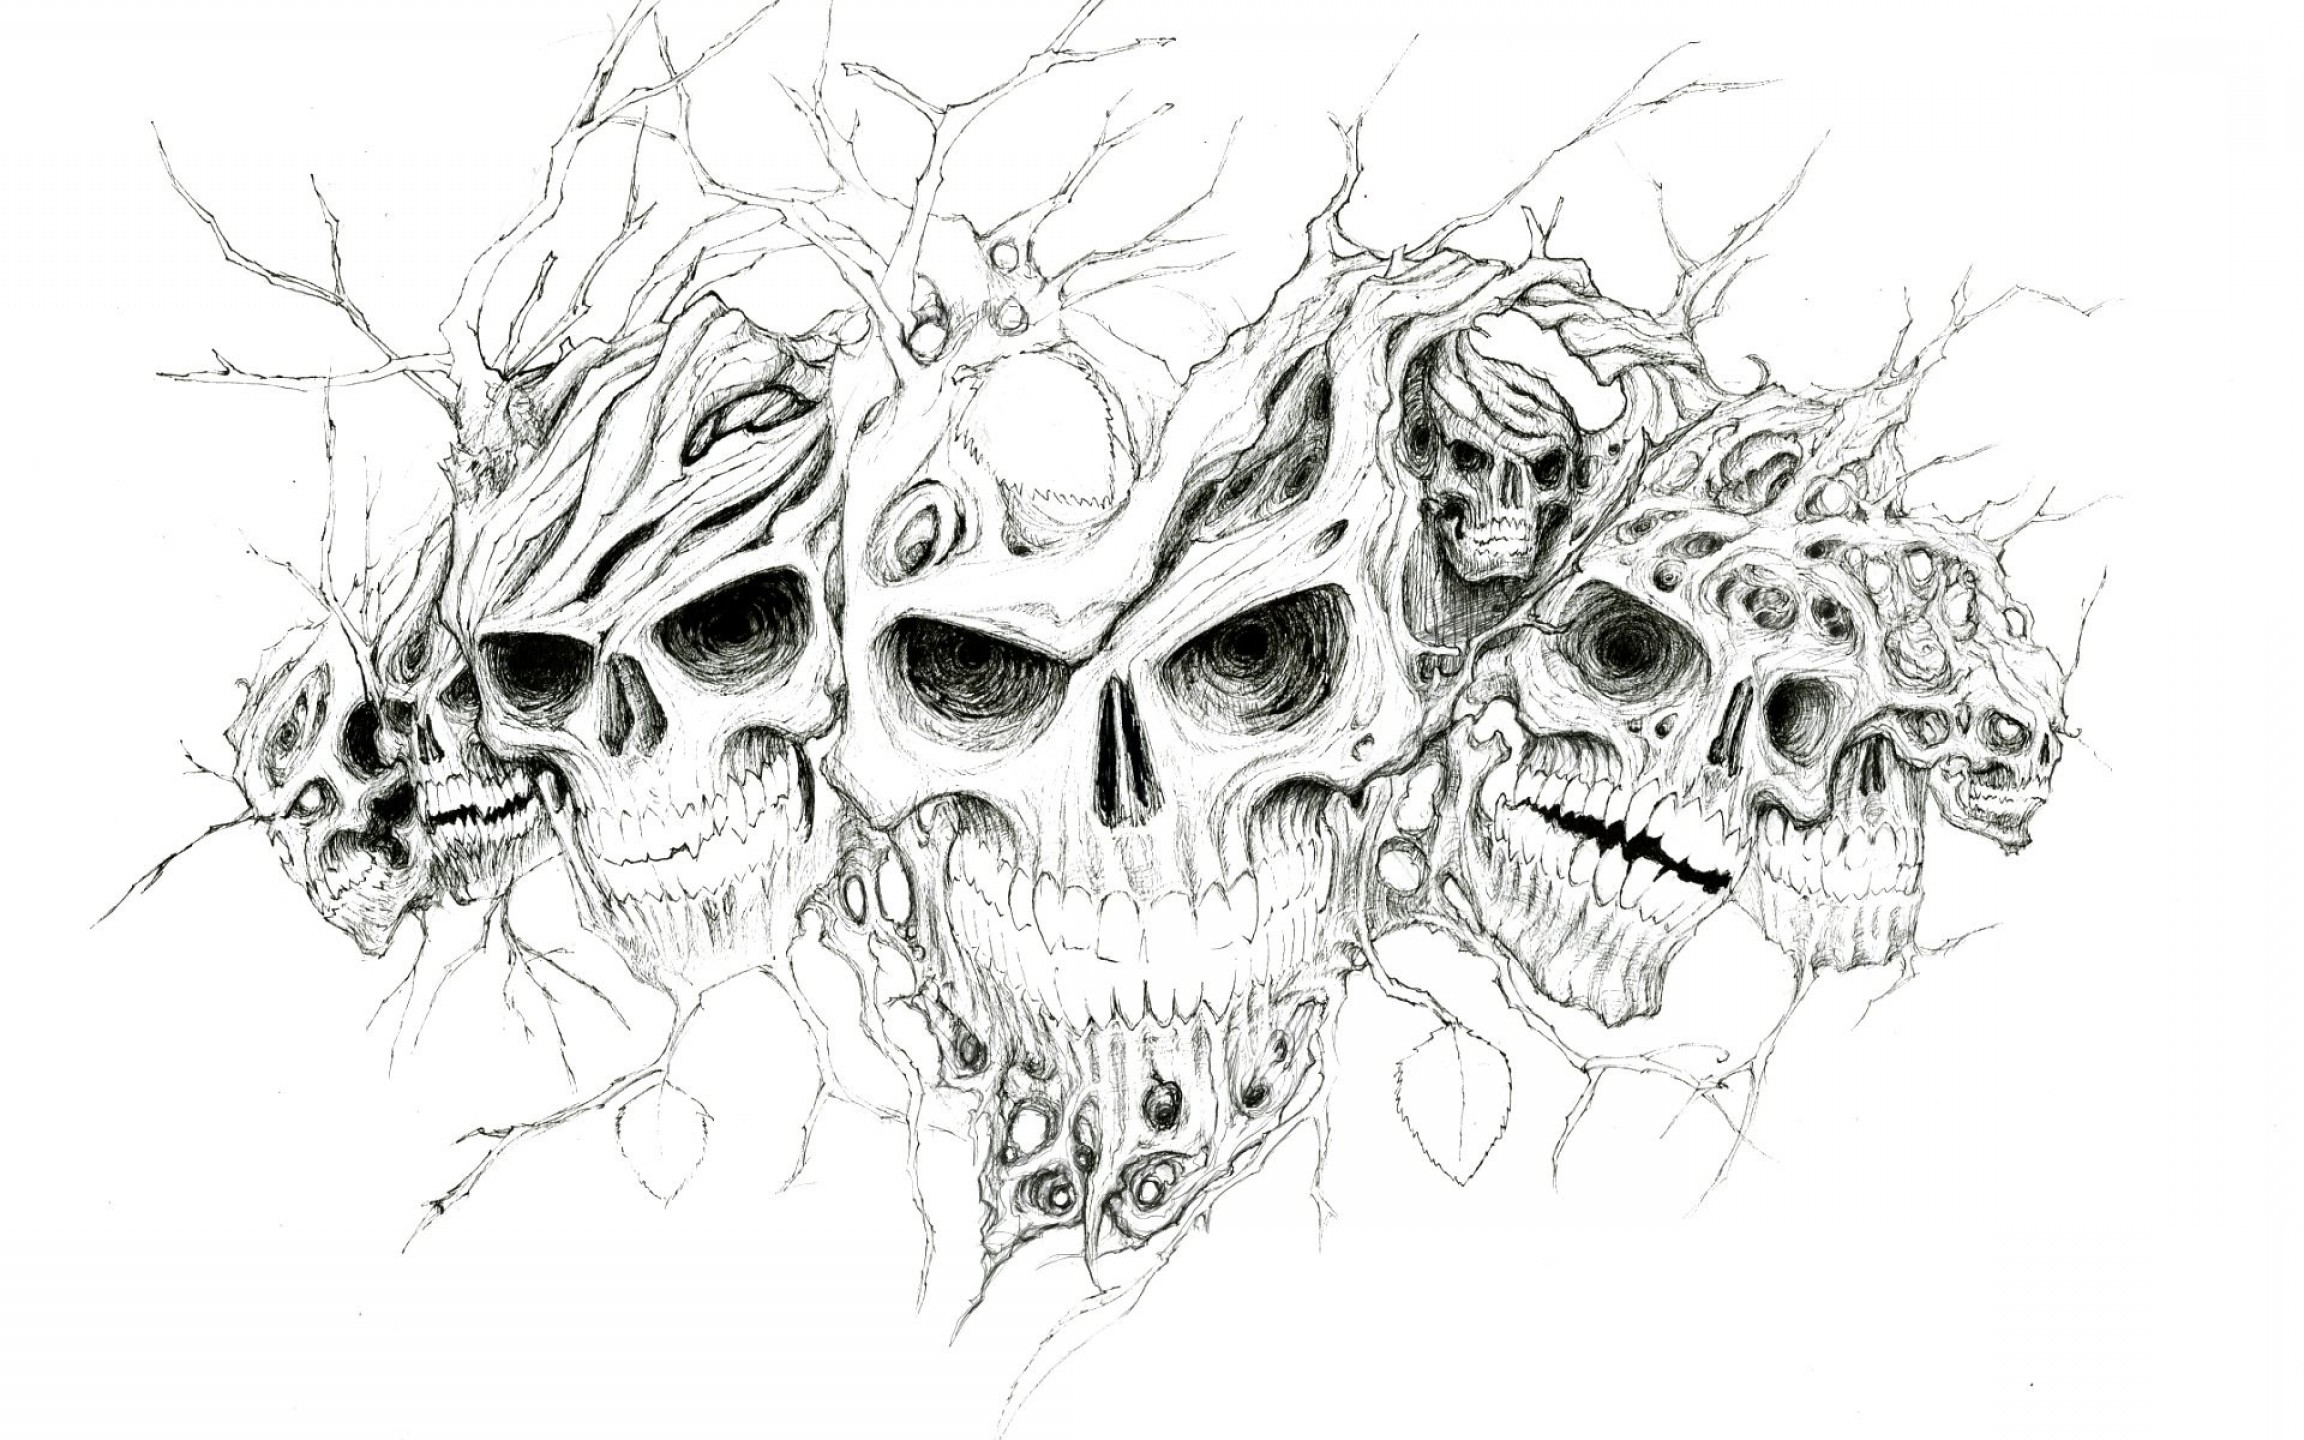 Cool Evil Vectors: Spooky Halloweenvector Original Fantasy Horrordark Cool Evil Creepy Desktop Images Download Artistic Artwork Scary Art